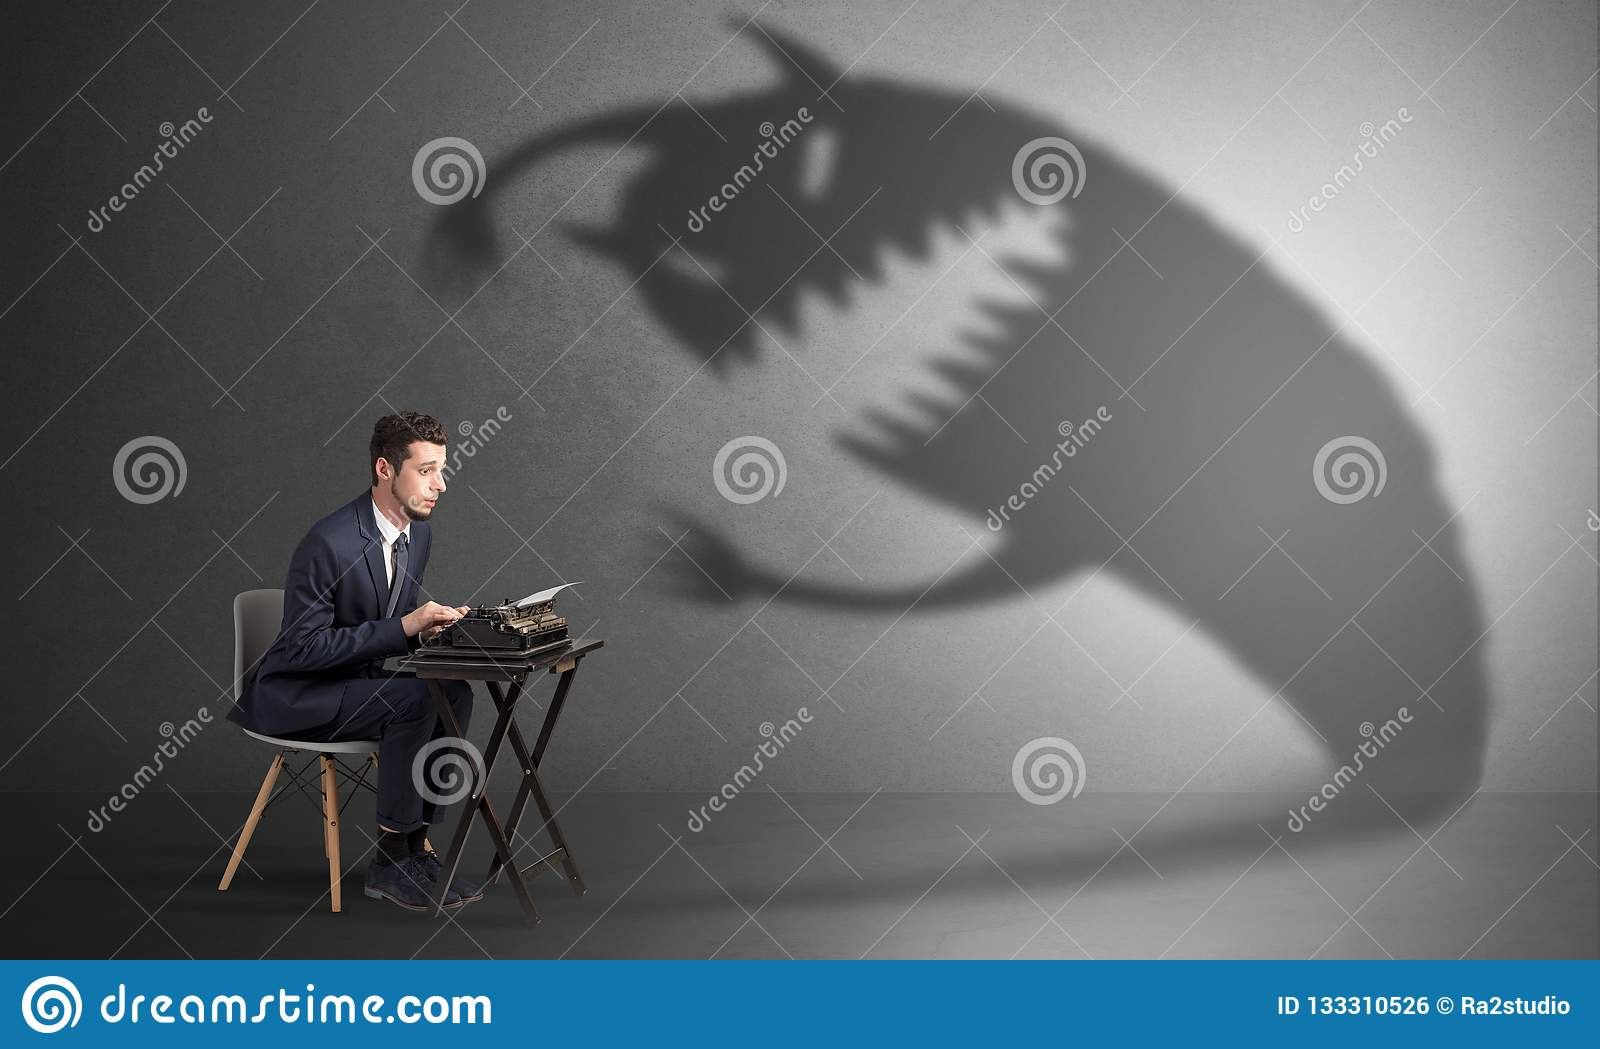 Hard worker afraid of scary monster